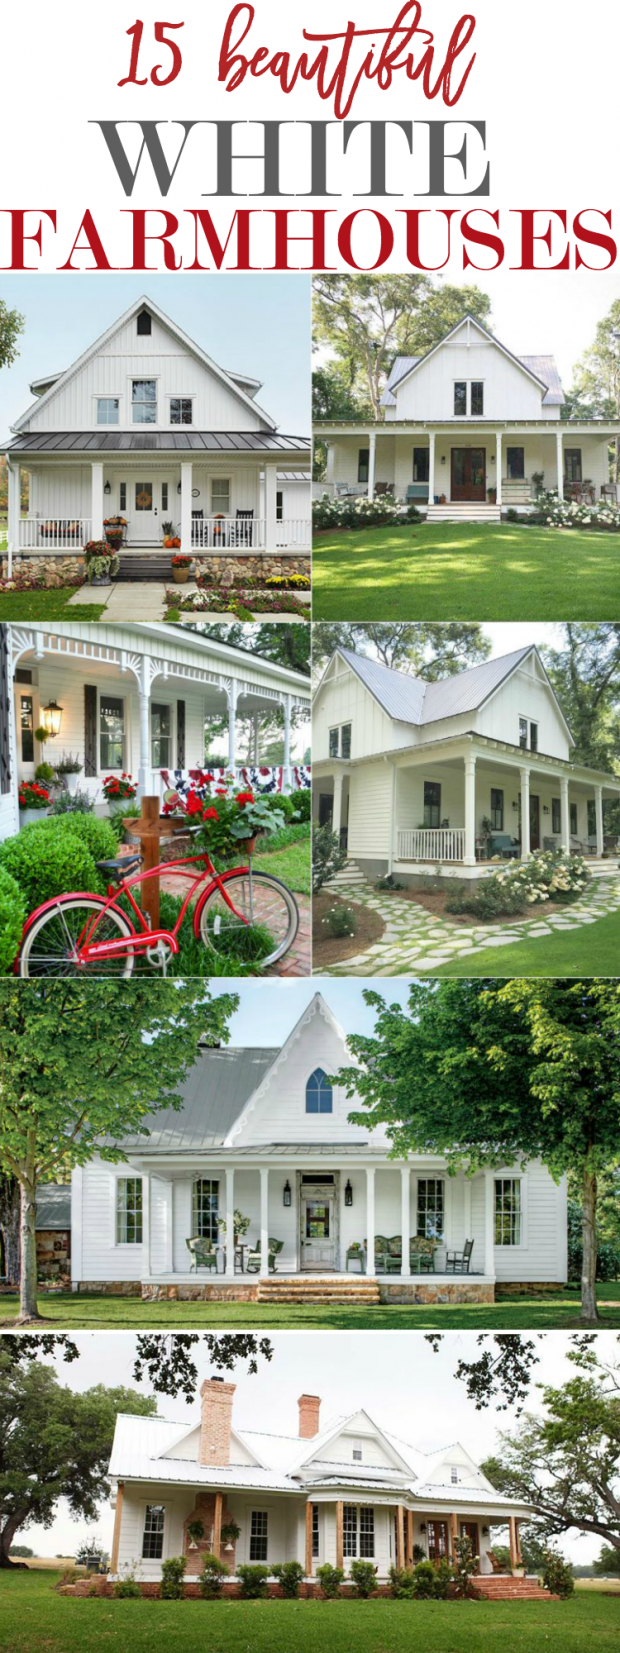 15 Beautiful White Farmhouses